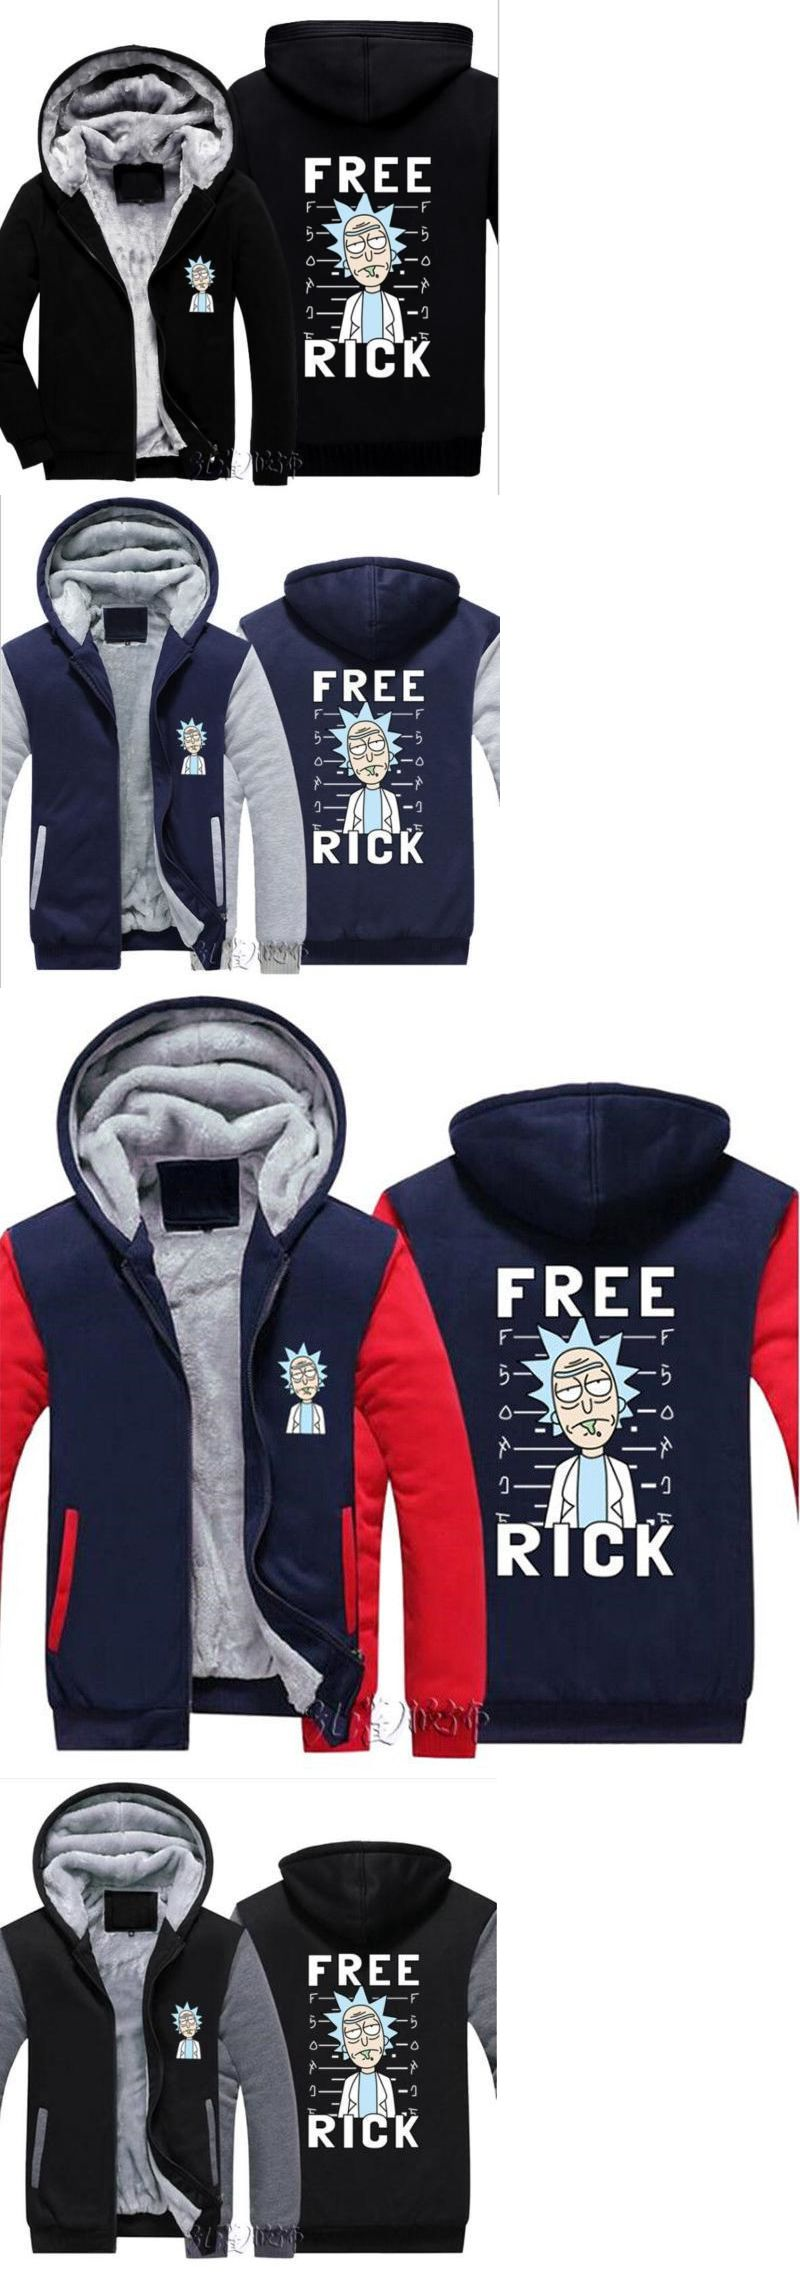 Coats and jackets 181372 new rick and morty hoodie anime coat jacket winter men thick zipper sweatshirt buy it now only 20 99 on ebay coats jackets